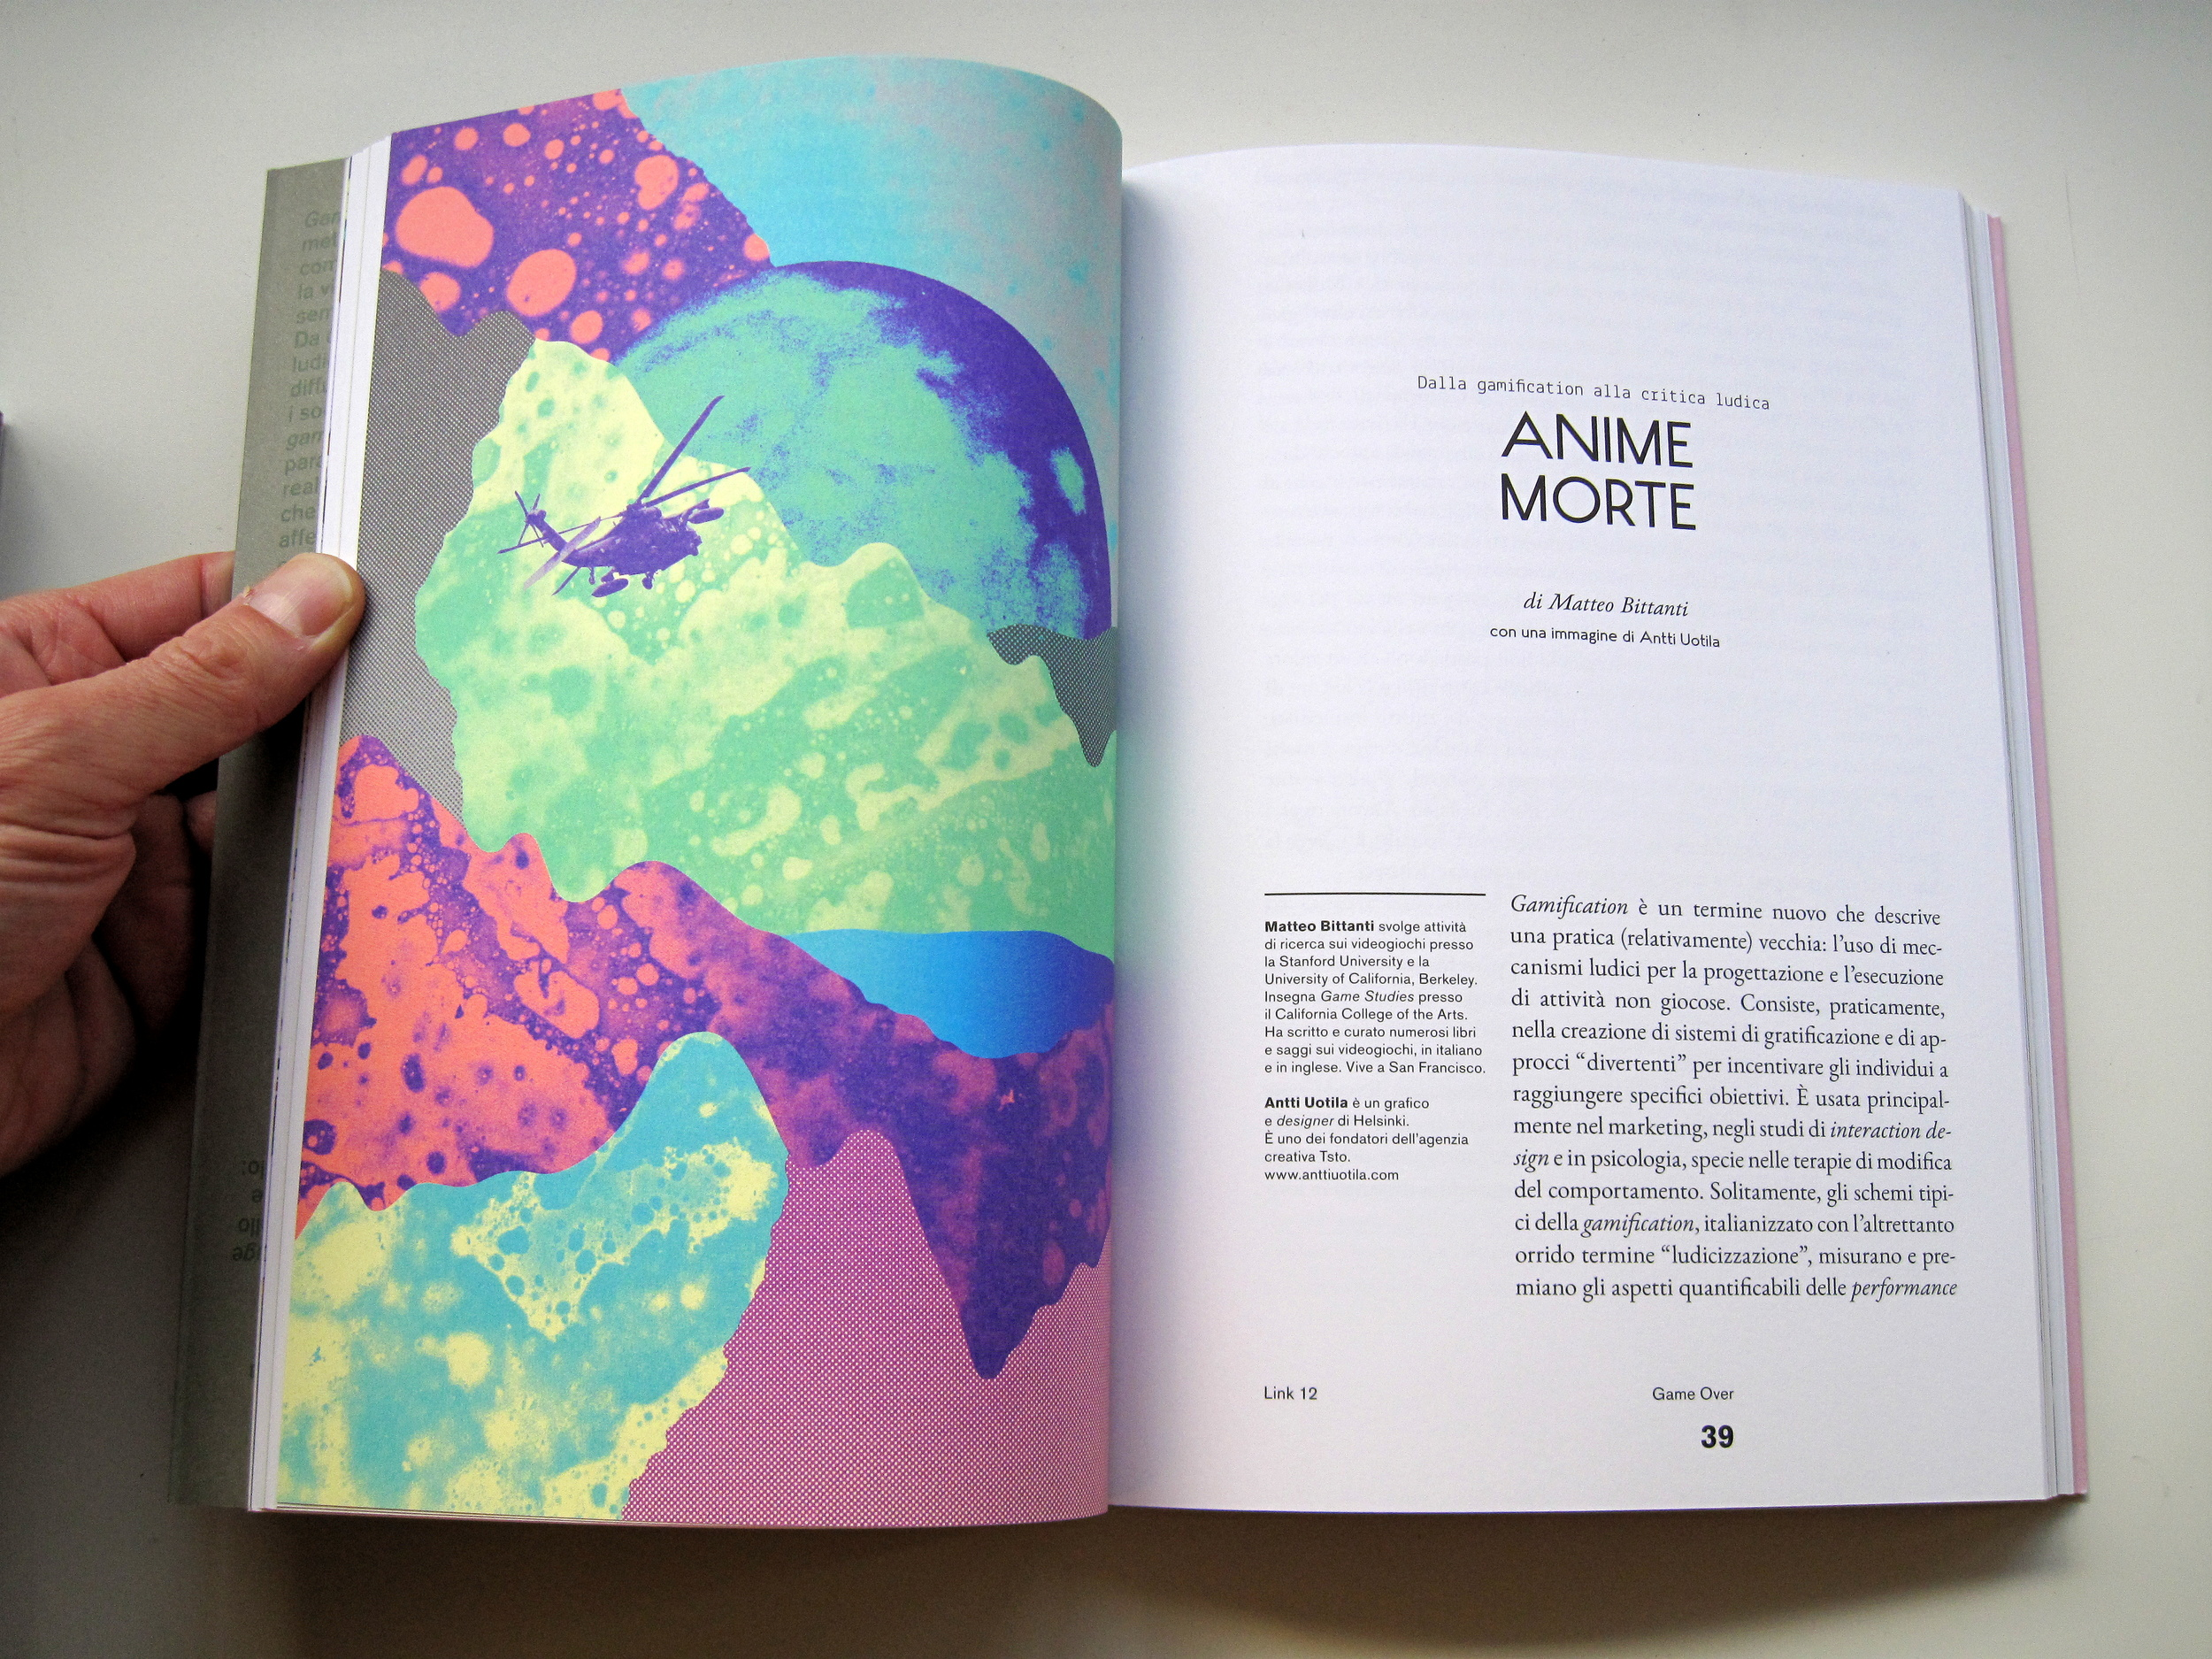 DIsciples is discussed in Anime Morte (Dead Soul) an essay published on Italian journal,   LINK #12,   published in November of 2012.